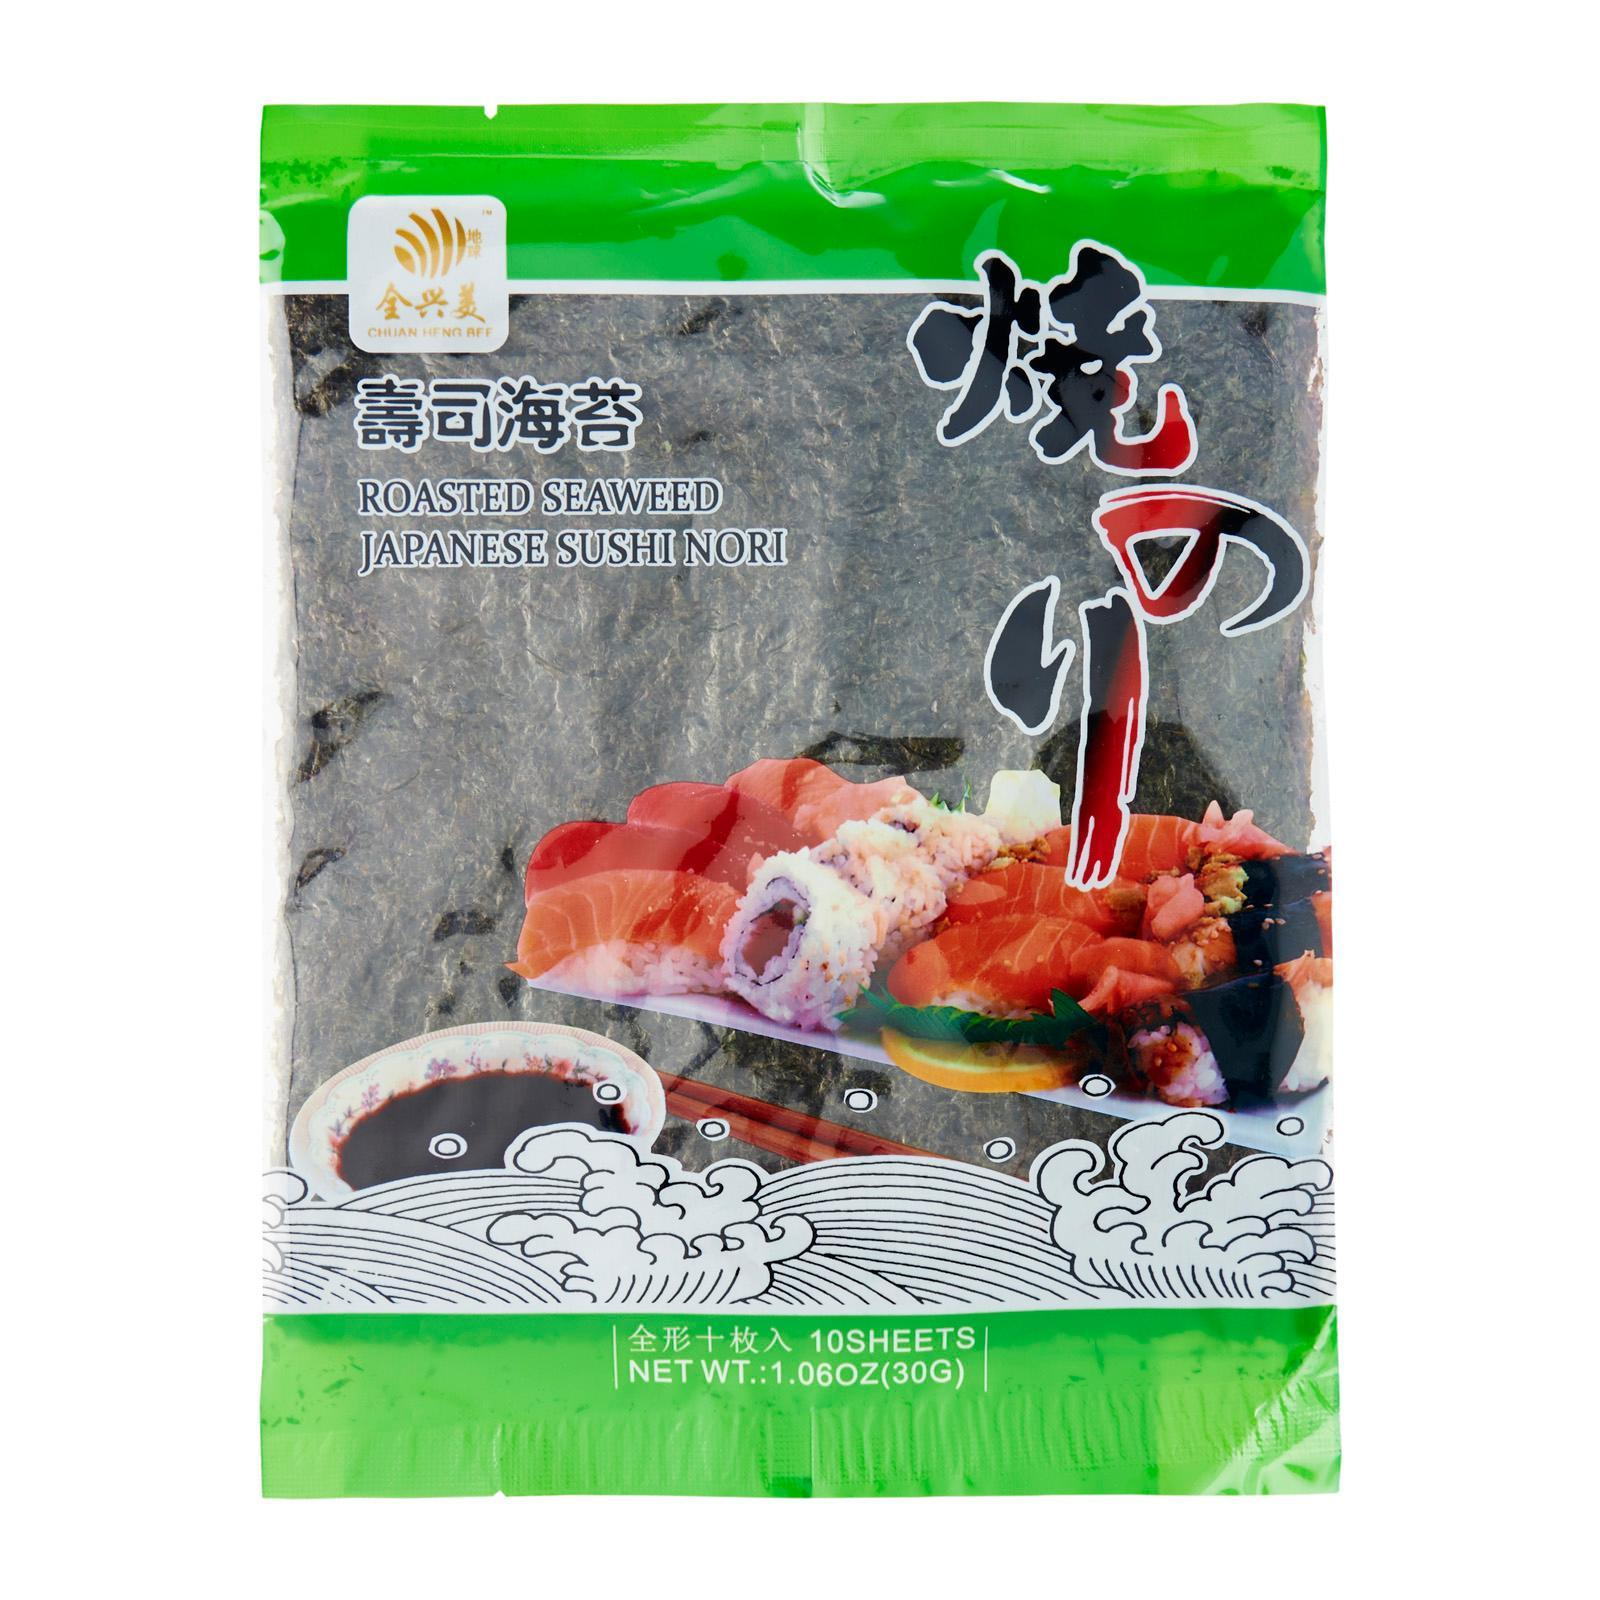 Chuan Heng Bee CHB Green Sushi Seaweed - By FOOD SERVICE